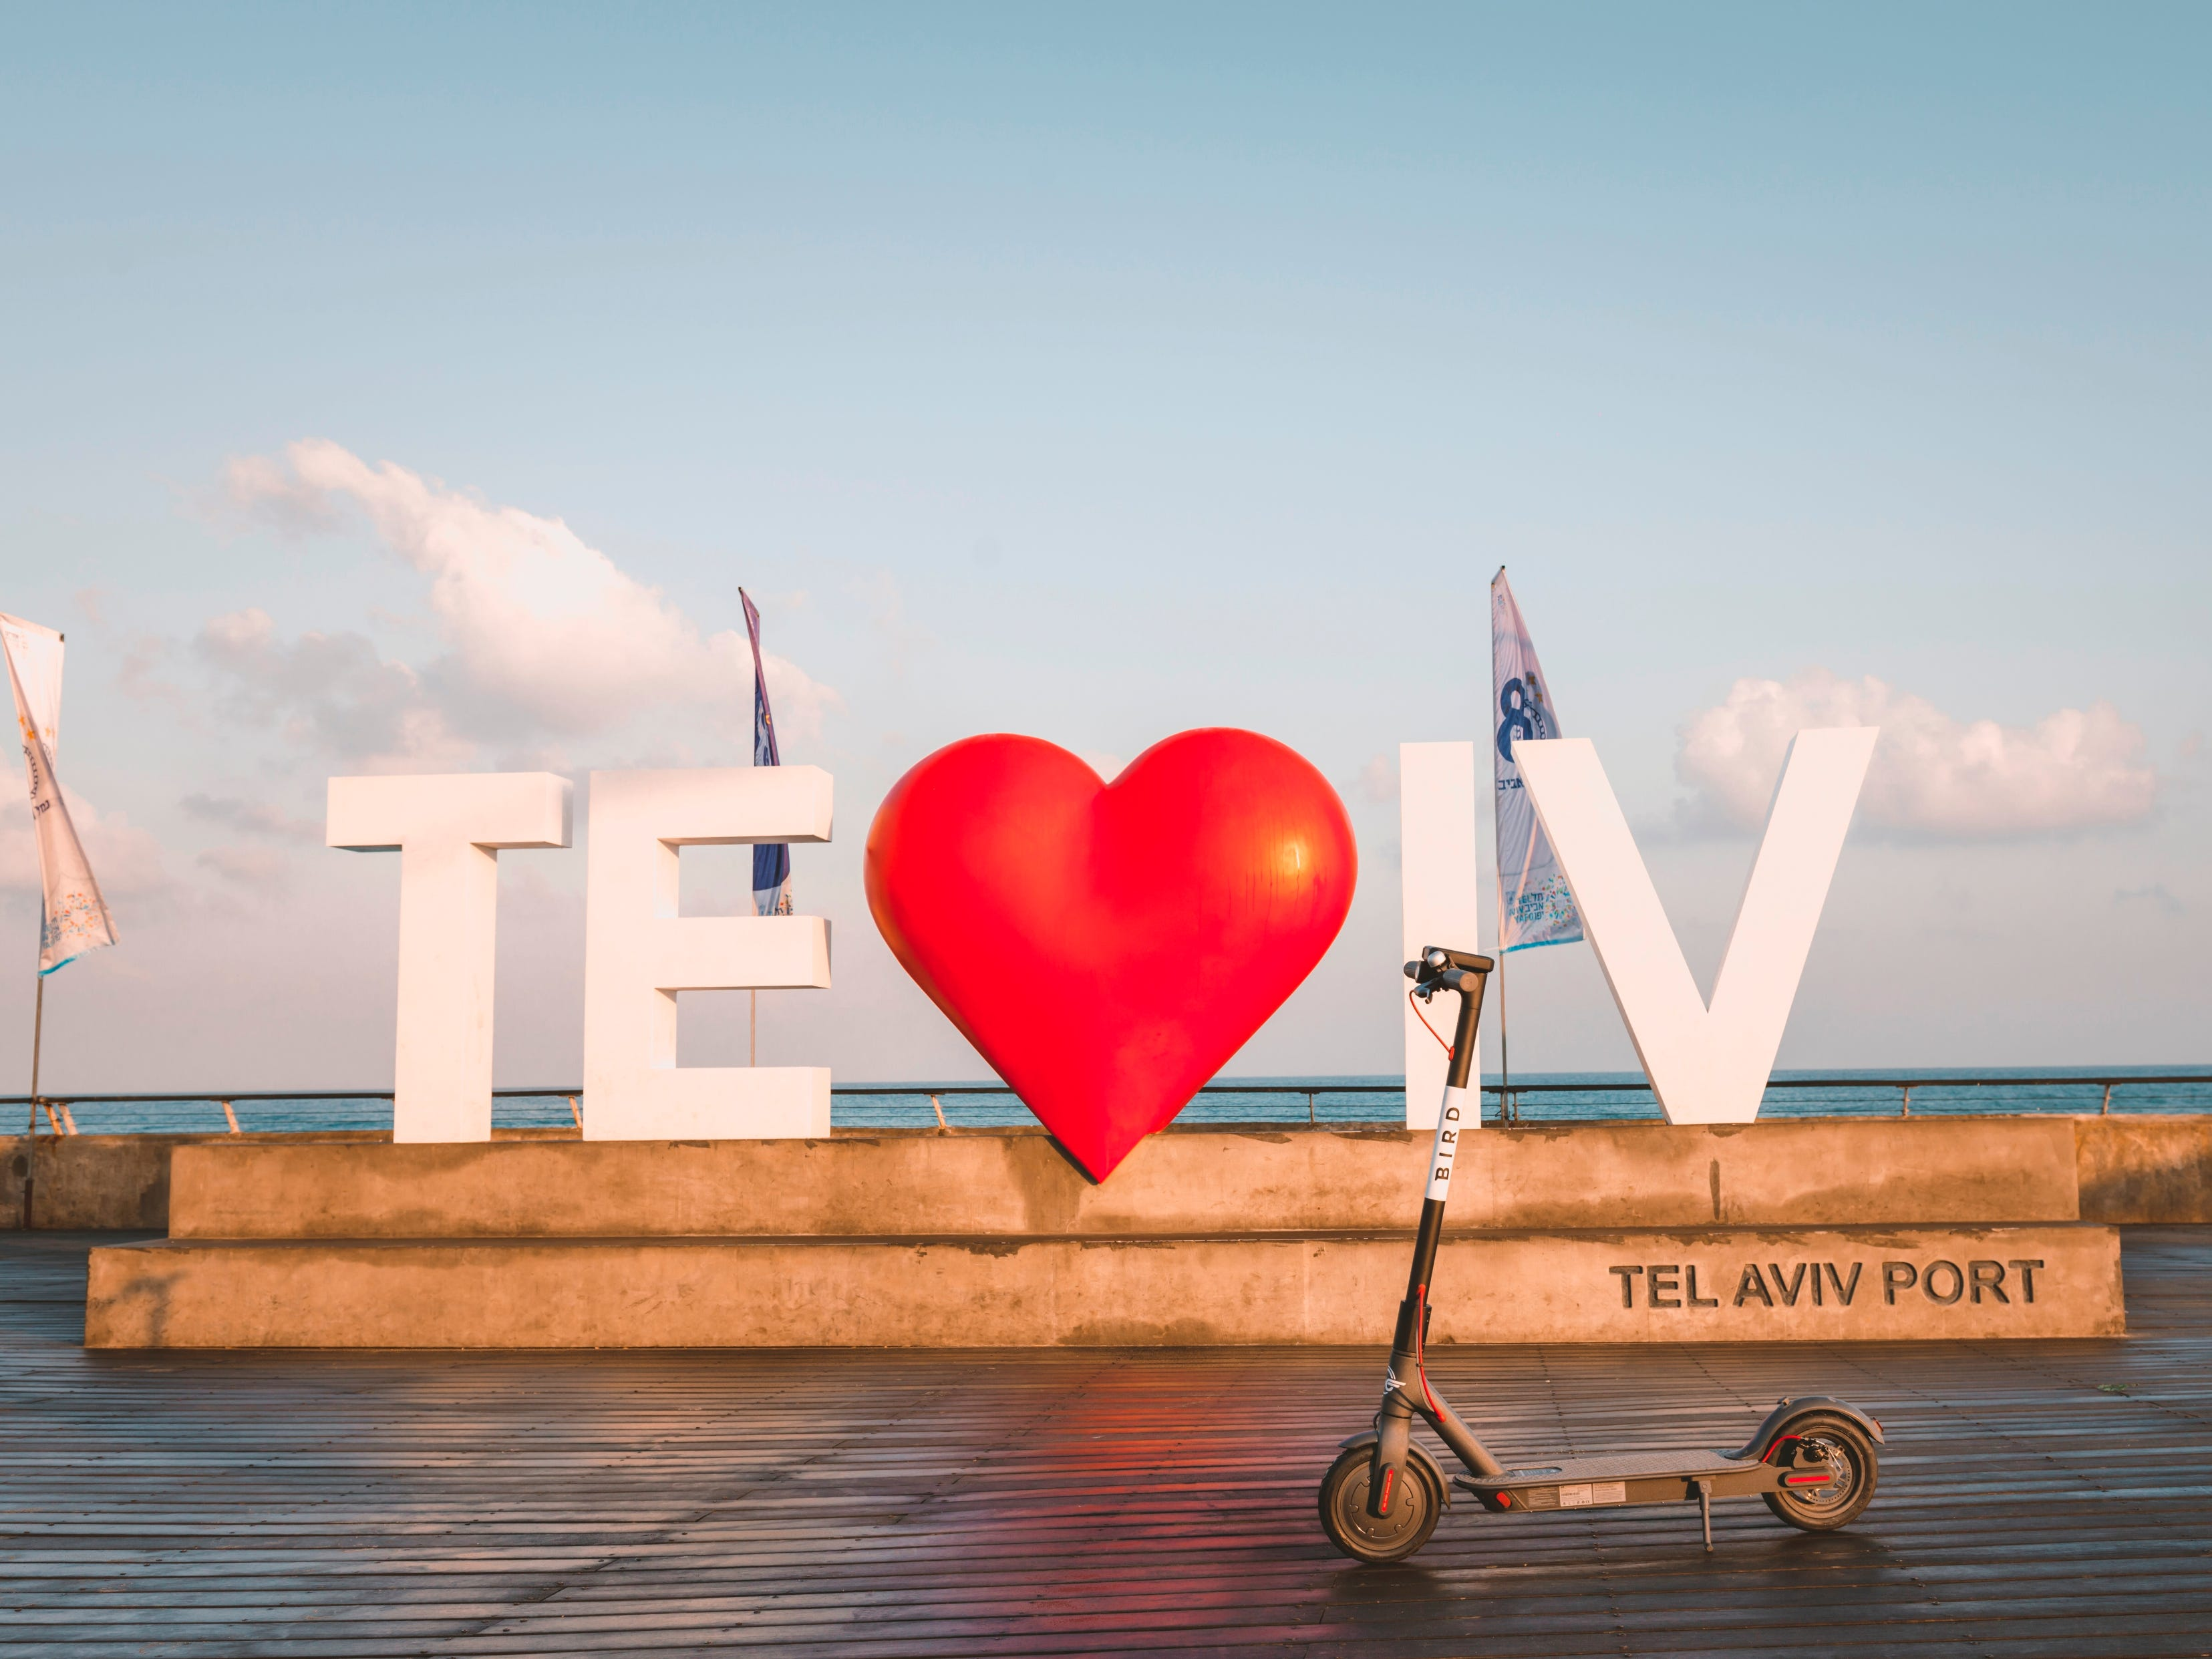 Scooters have taken off in traffic-choked and tech-focused Tel Aviv, Israel, where the vehicles are often used for outings to the city's Mediterranean beaches.